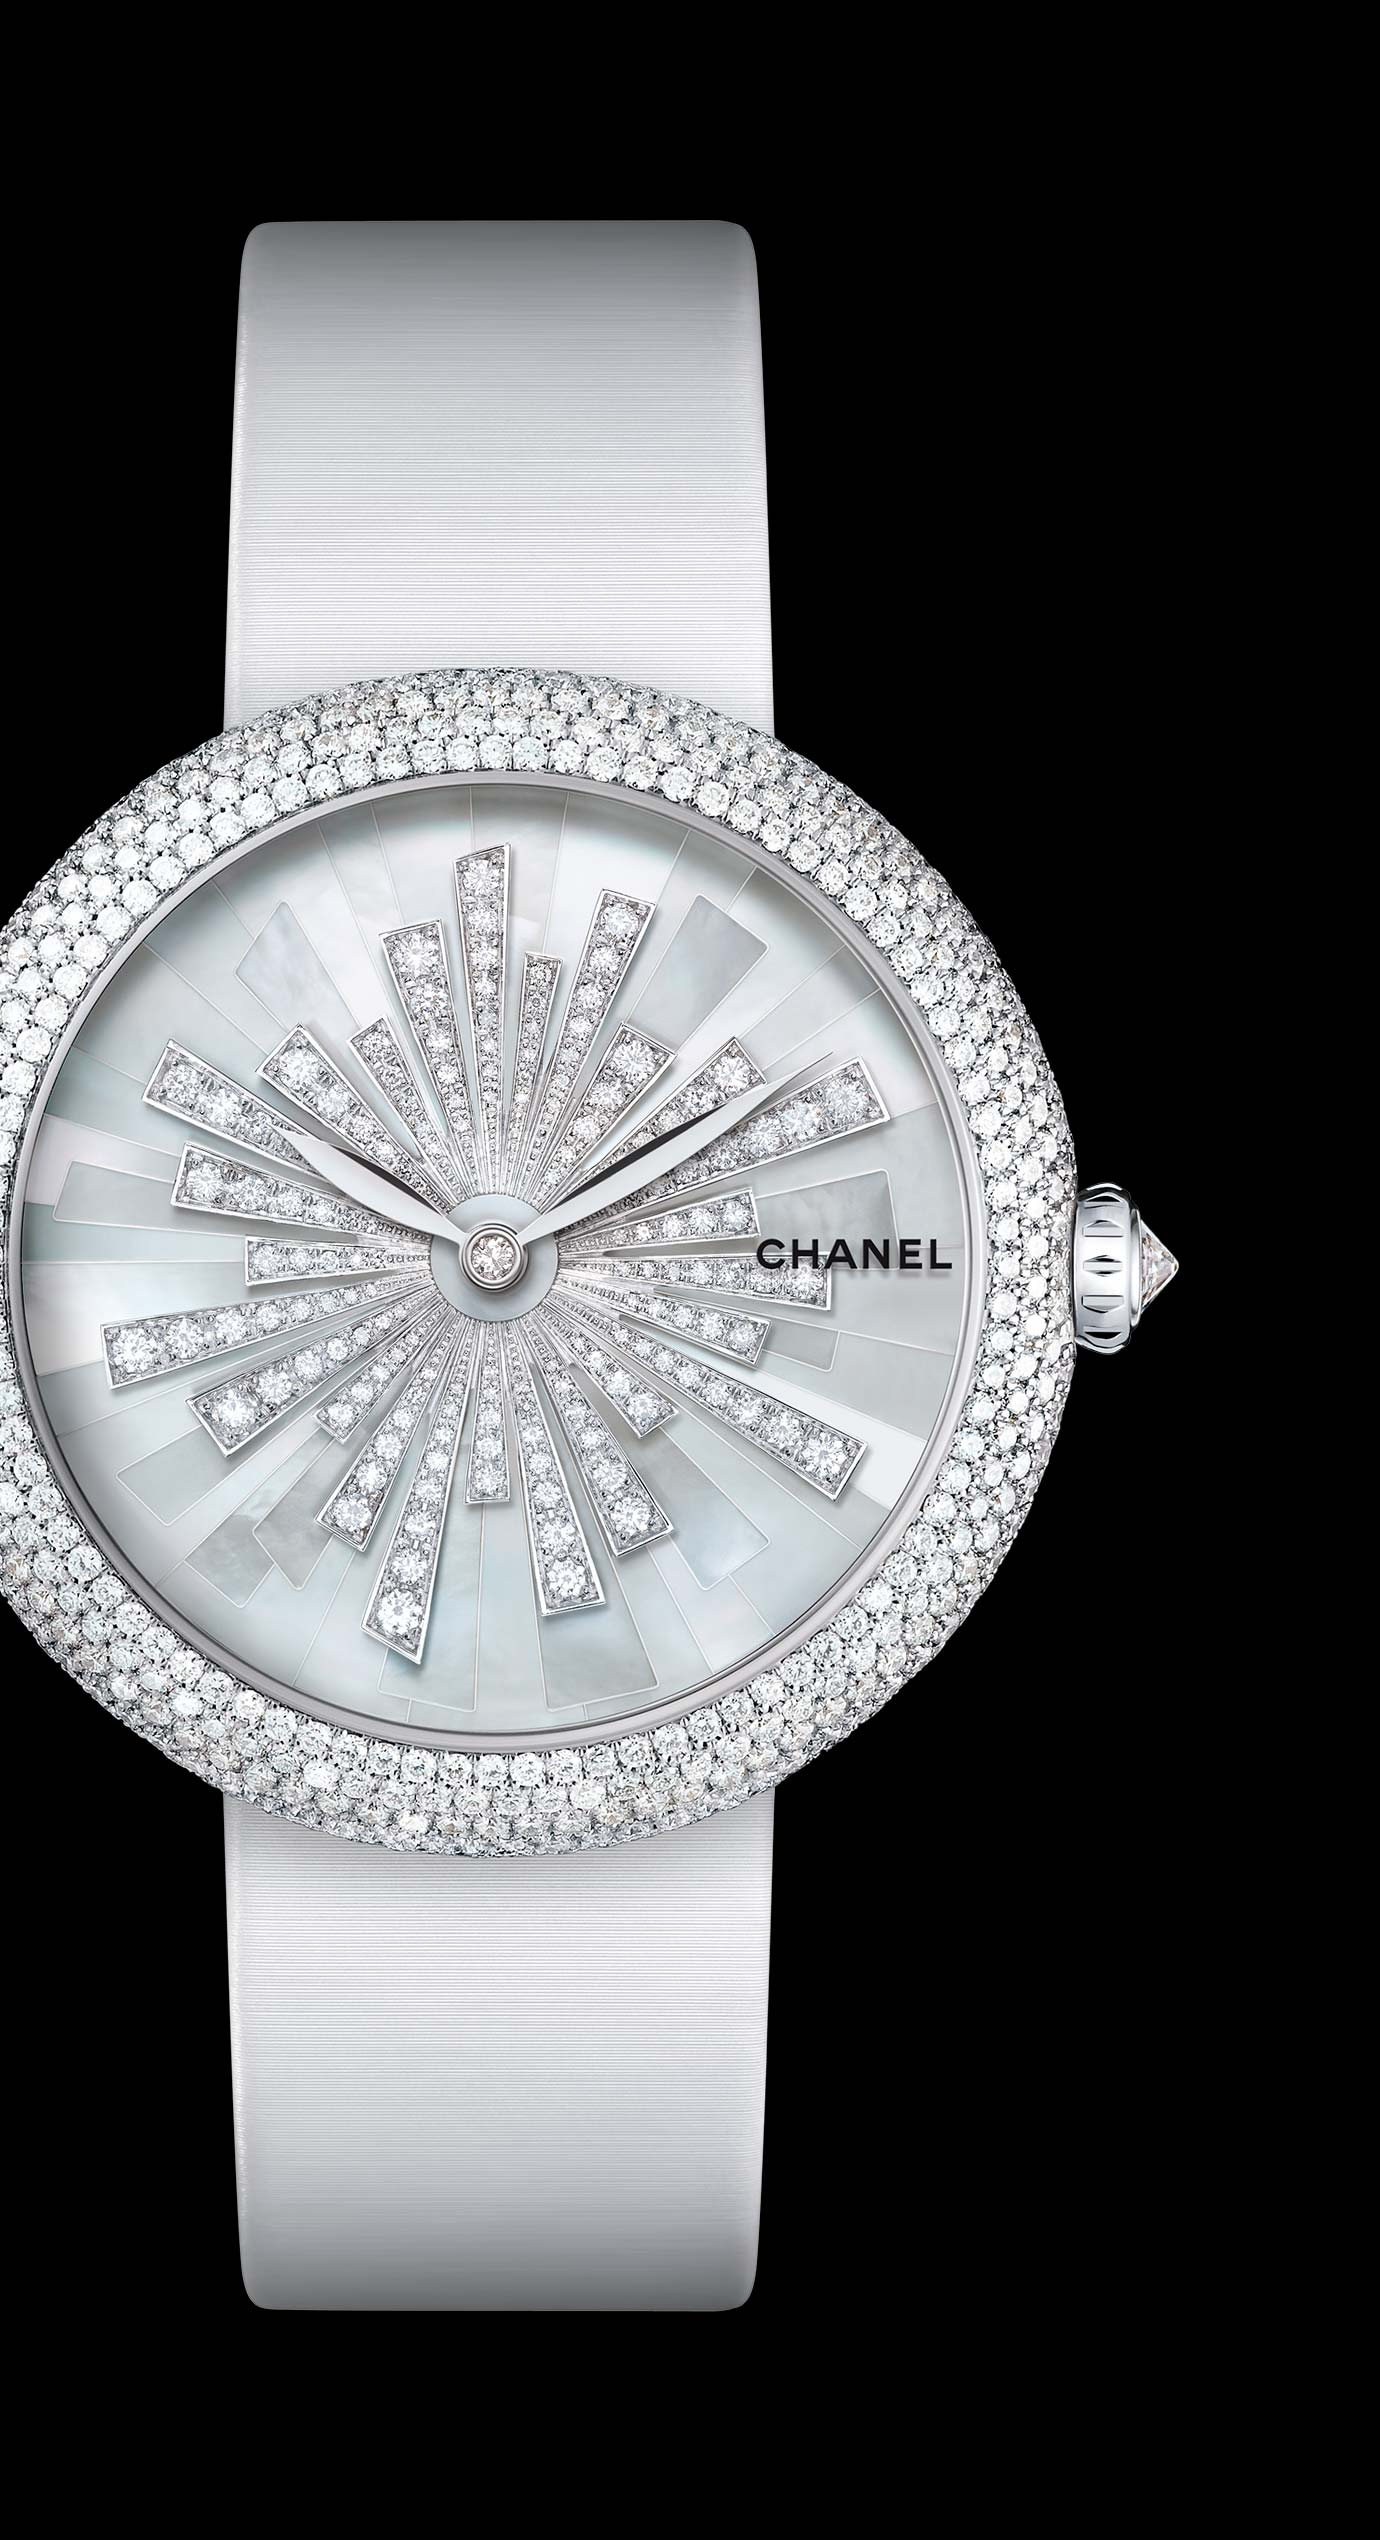 Mademoiselle Privé Bijoux de Diamants Soleil Jewellery watch - mother-of-pearl marquetry and diamonds.